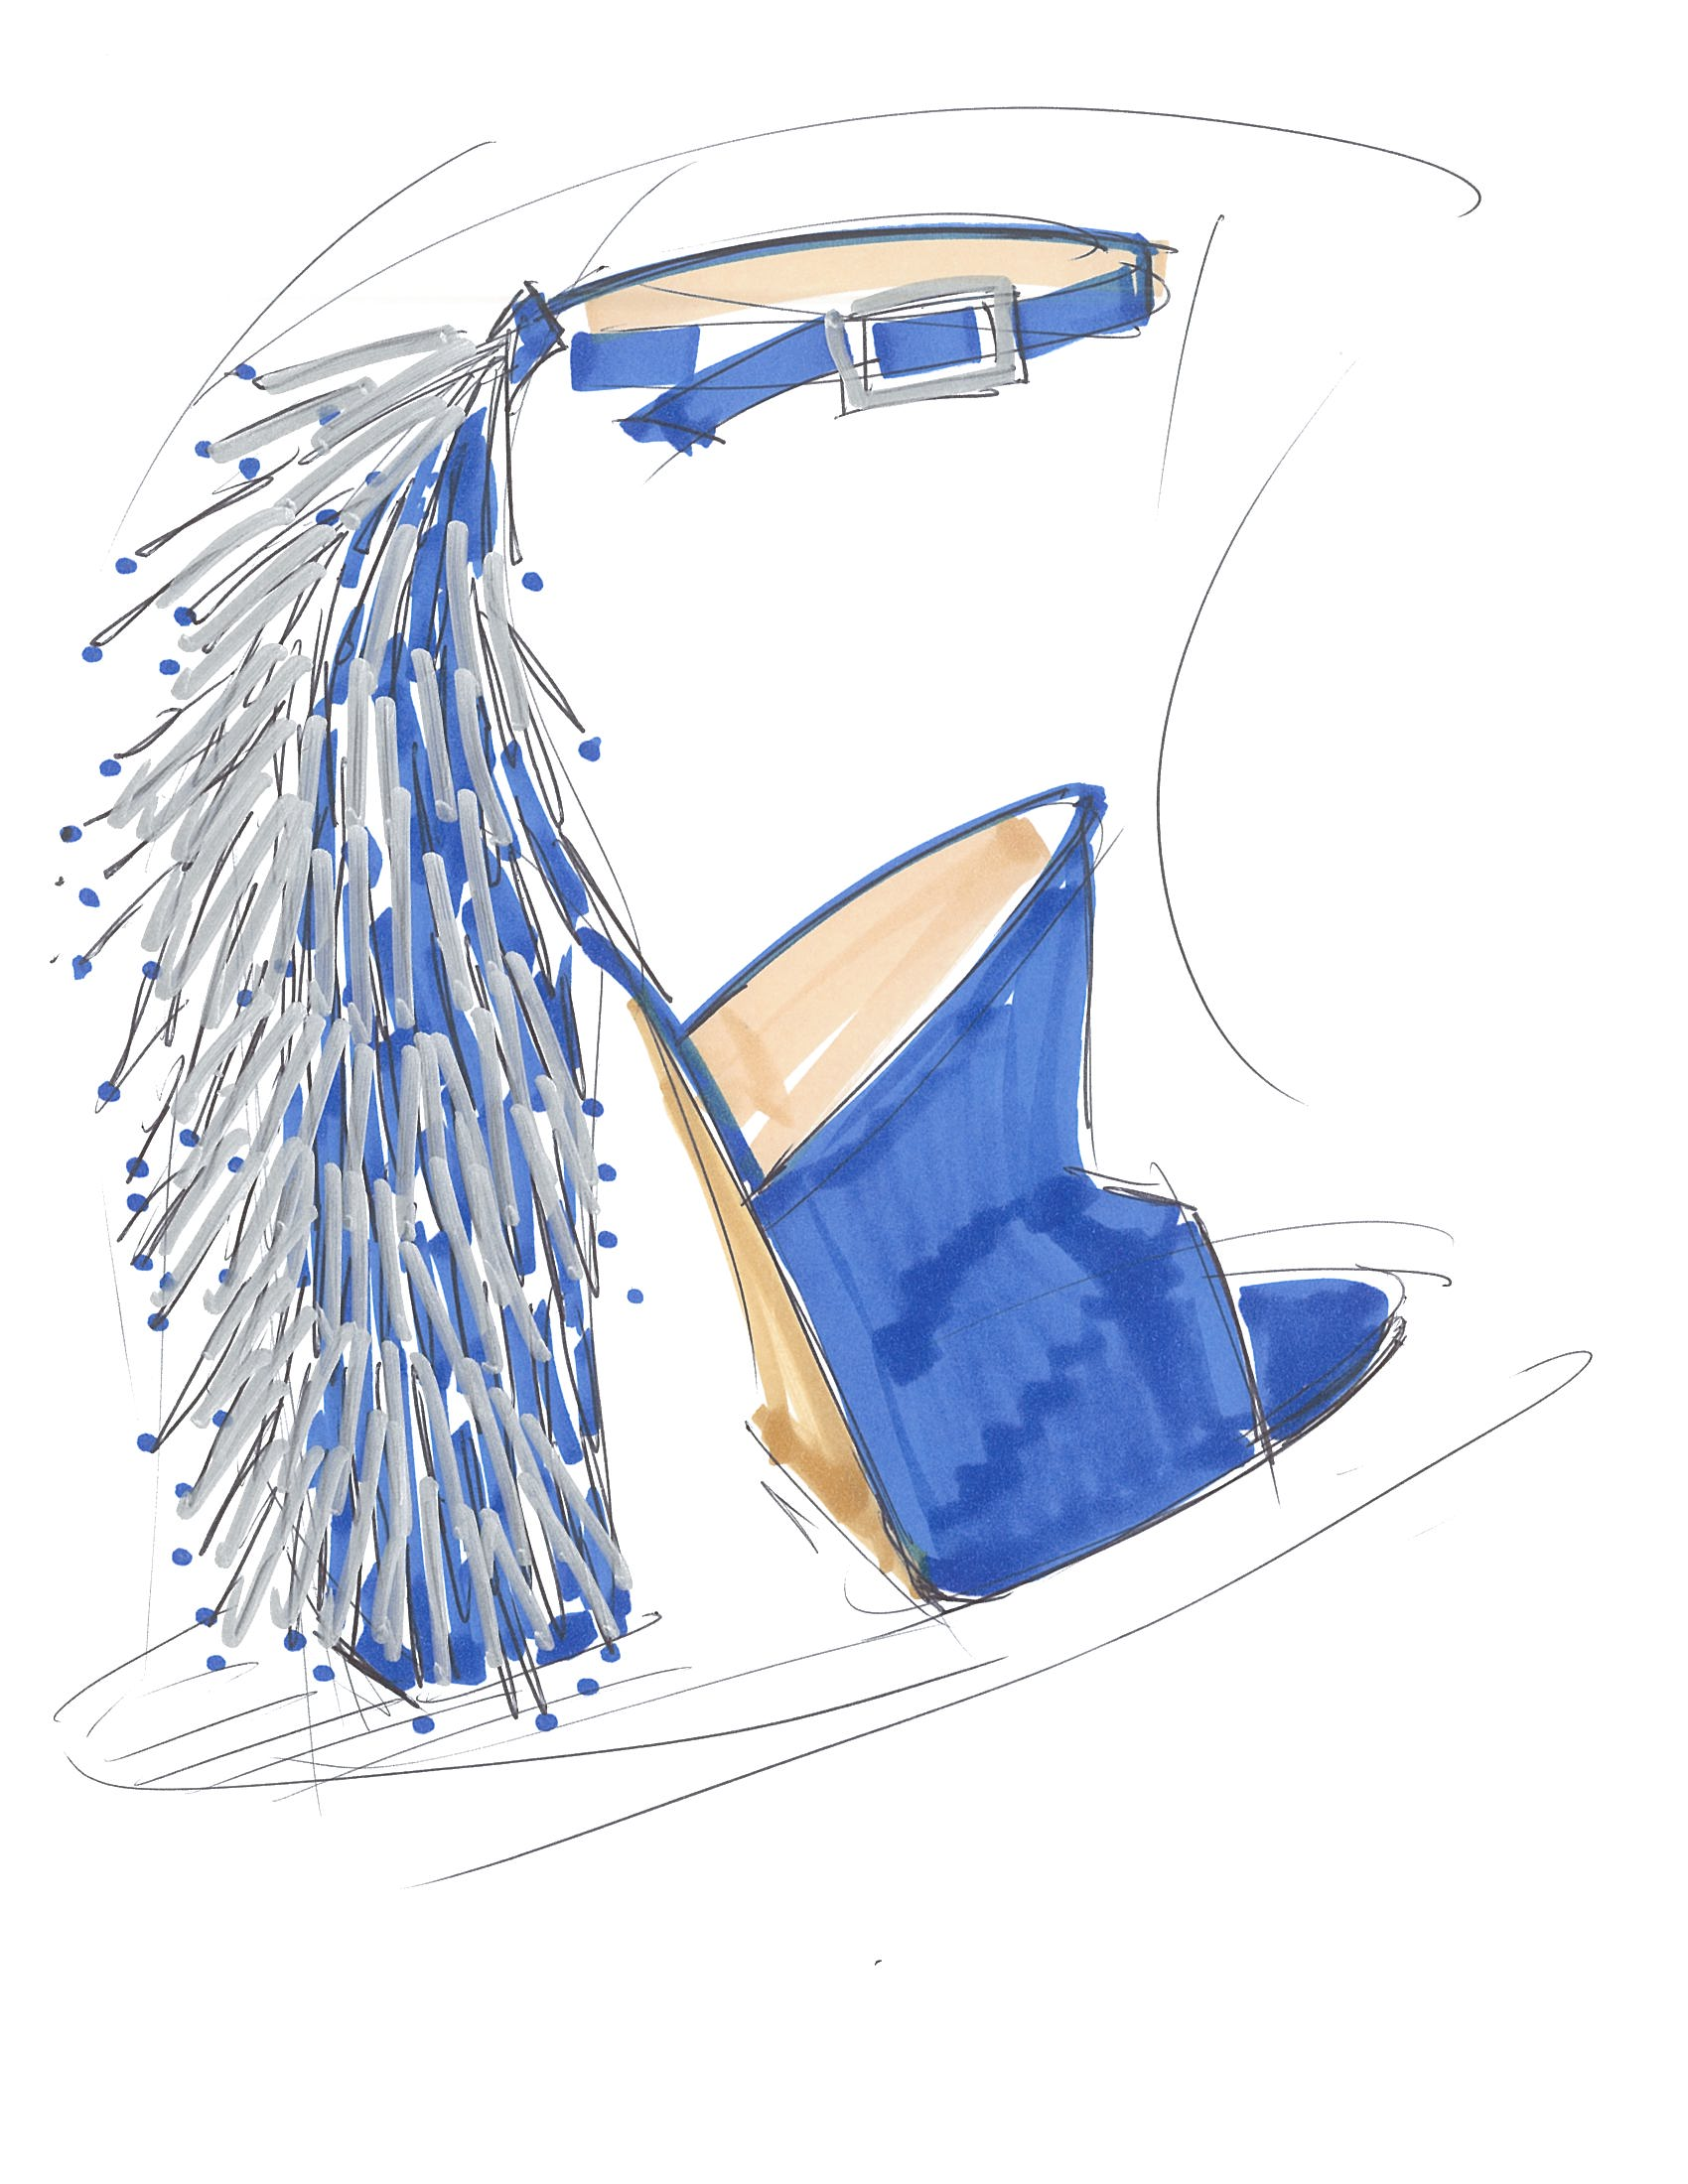 Shoe sketch from Katy Perry's footwear collection.